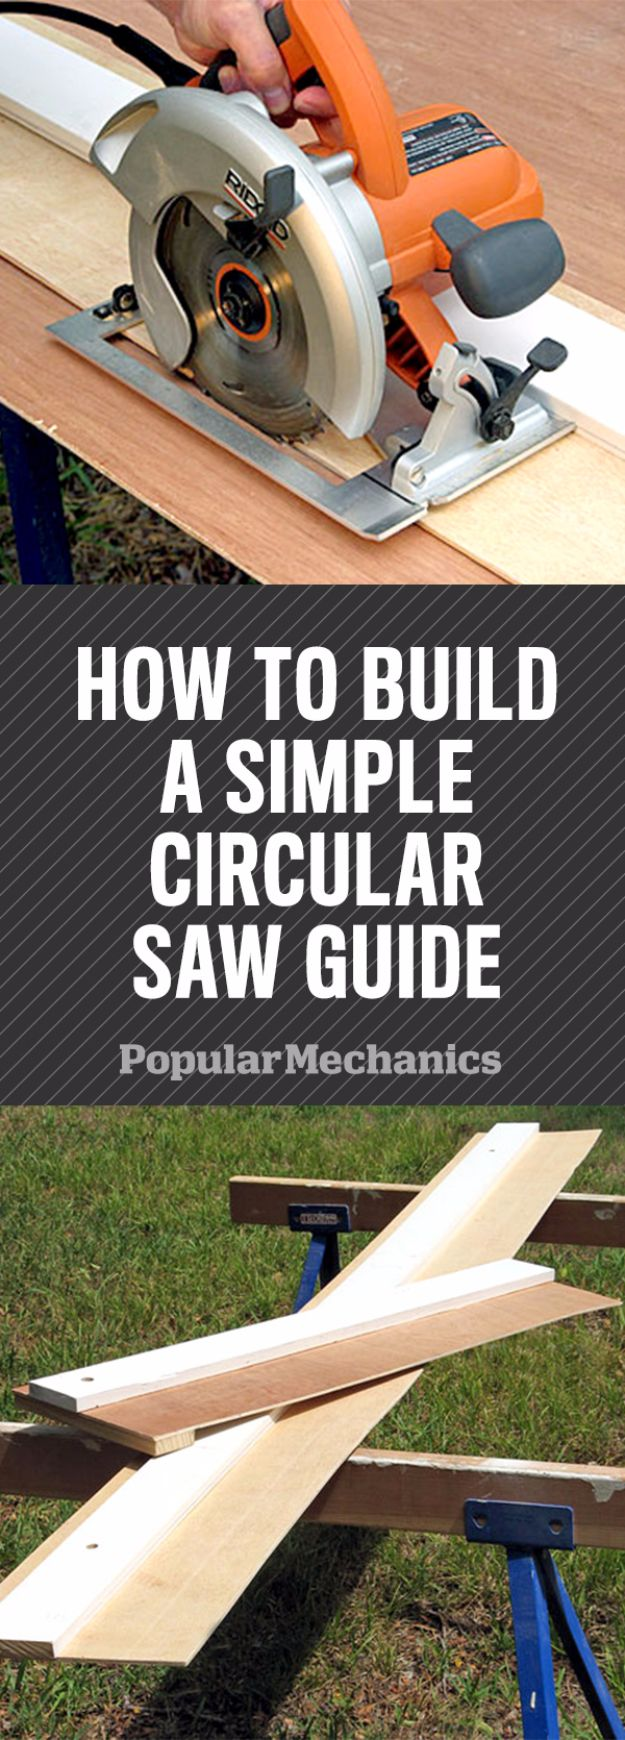 Cool Woodworking Tips - Build a Simple Circular Saw Guide for Straighter Cuts - Easy Woodworking Ideas, Woodworking Tips and Tricks, Woodworking Tips For Beginners, Basic Guide For Woodworking - Refinishing Wood, Sanding and Staining, Cleaning Wood and Upcycling Pallets #woodworking